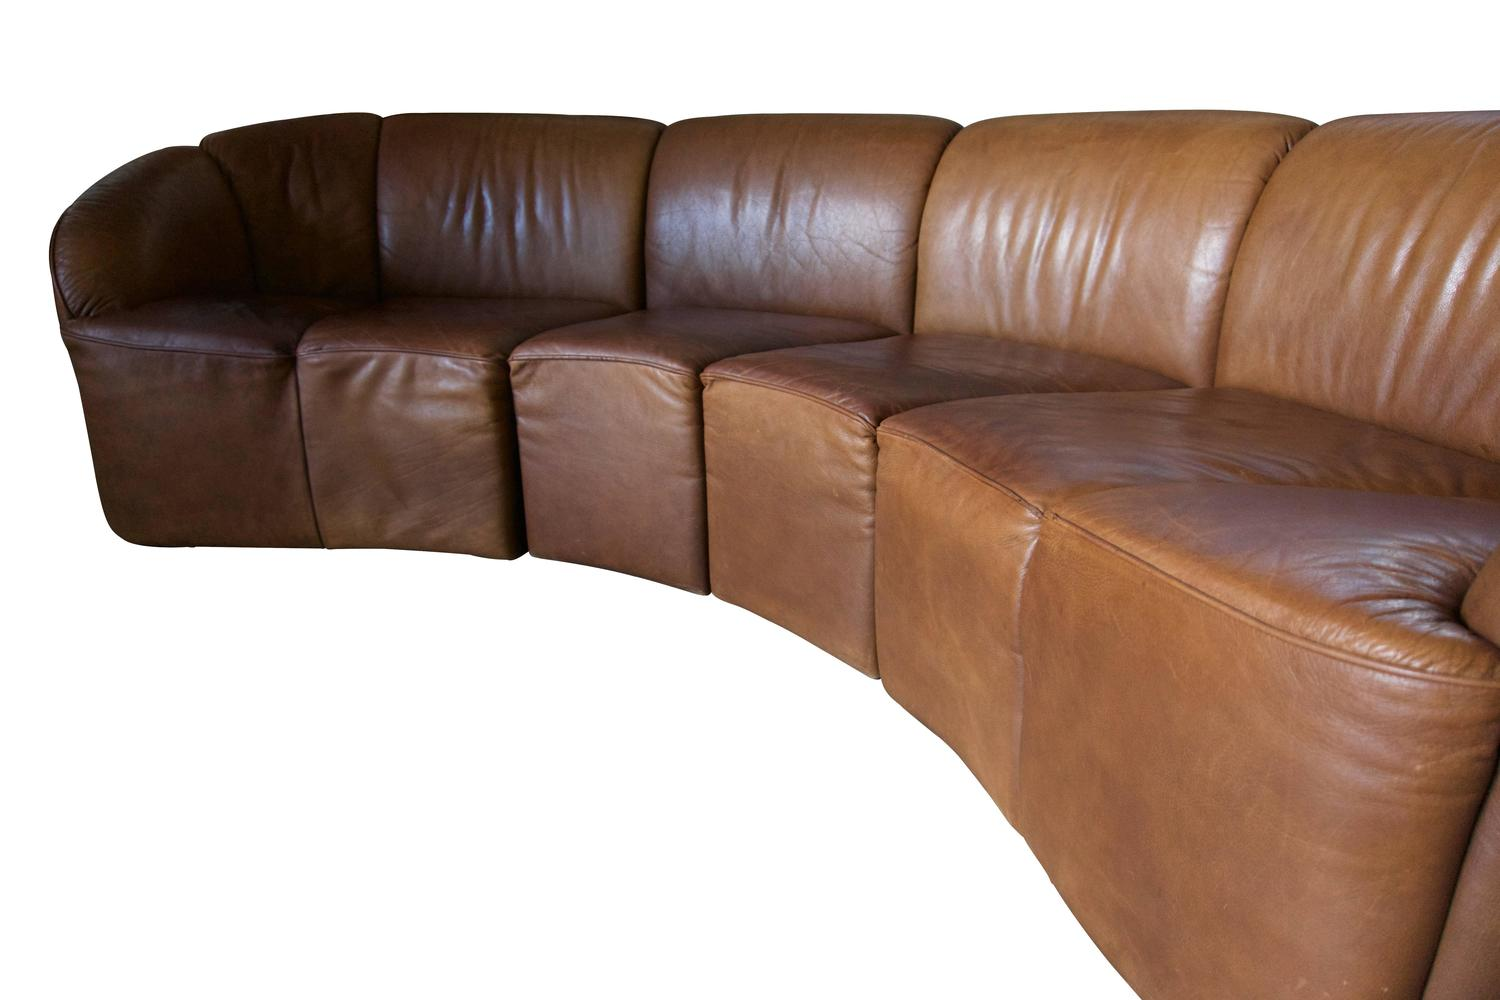 modular cognac leather sofa by knoll international 1970s. Black Bedroom Furniture Sets. Home Design Ideas